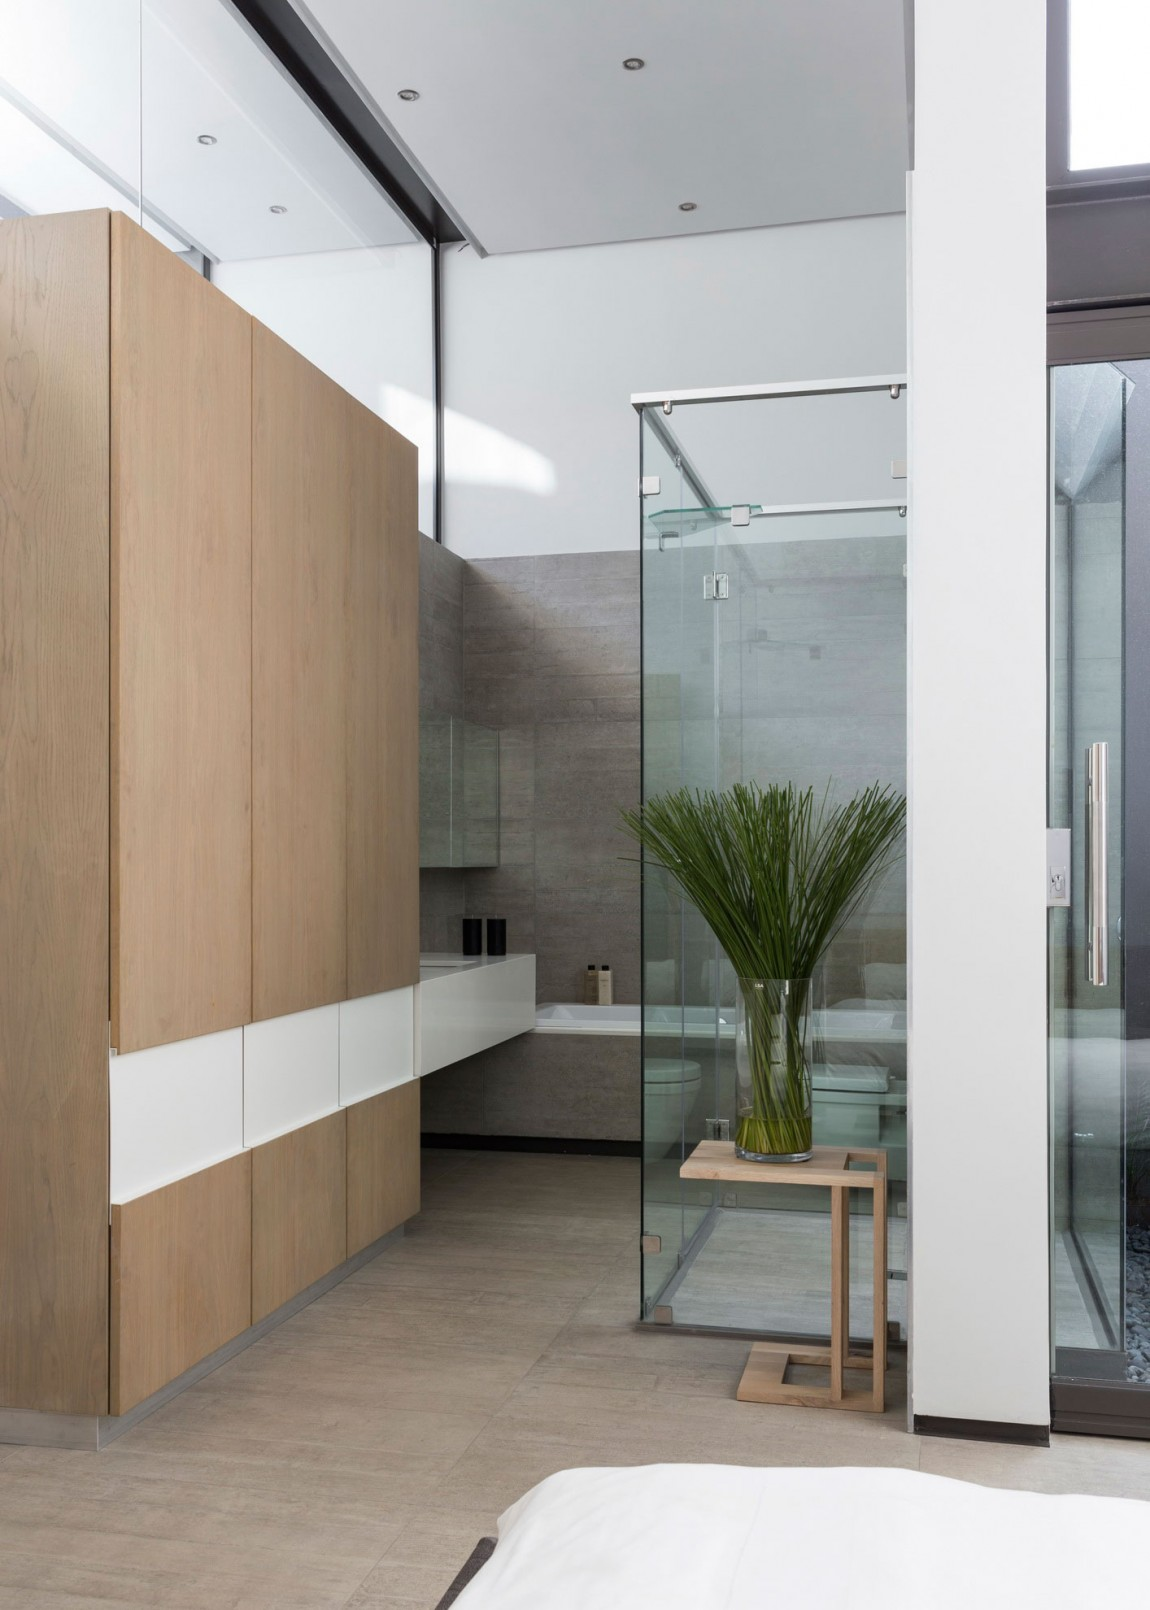 Modern bathroom in House Sar by Nico van der Meulen Architects